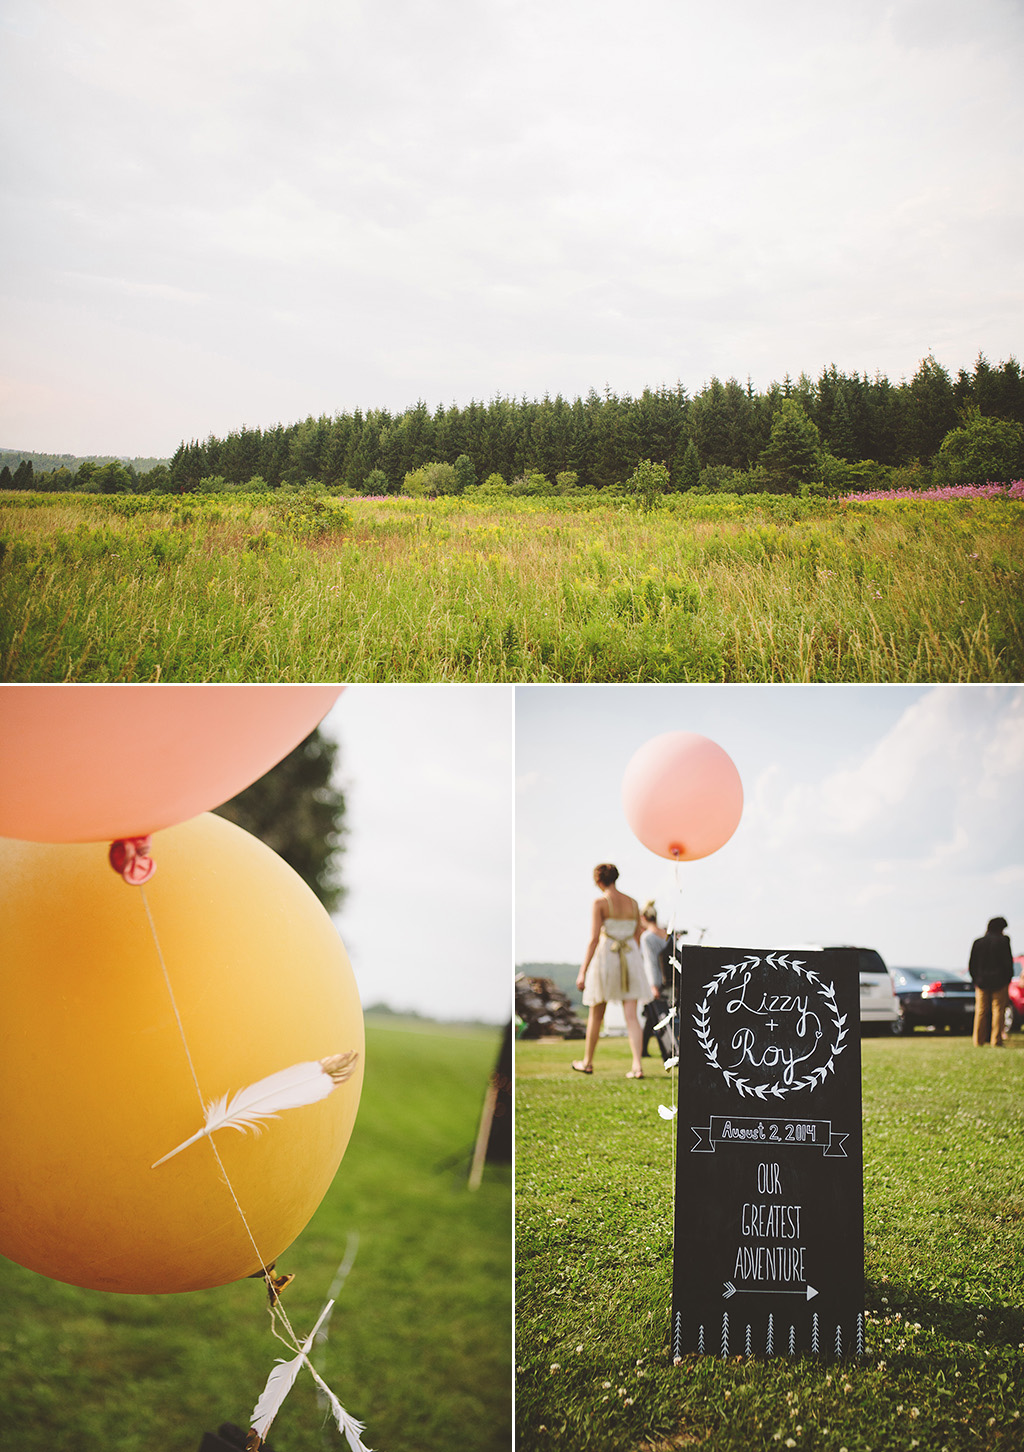 DIY wedding ideas with gold dipped feathers, pink baloons, and chalk board welcome sign.